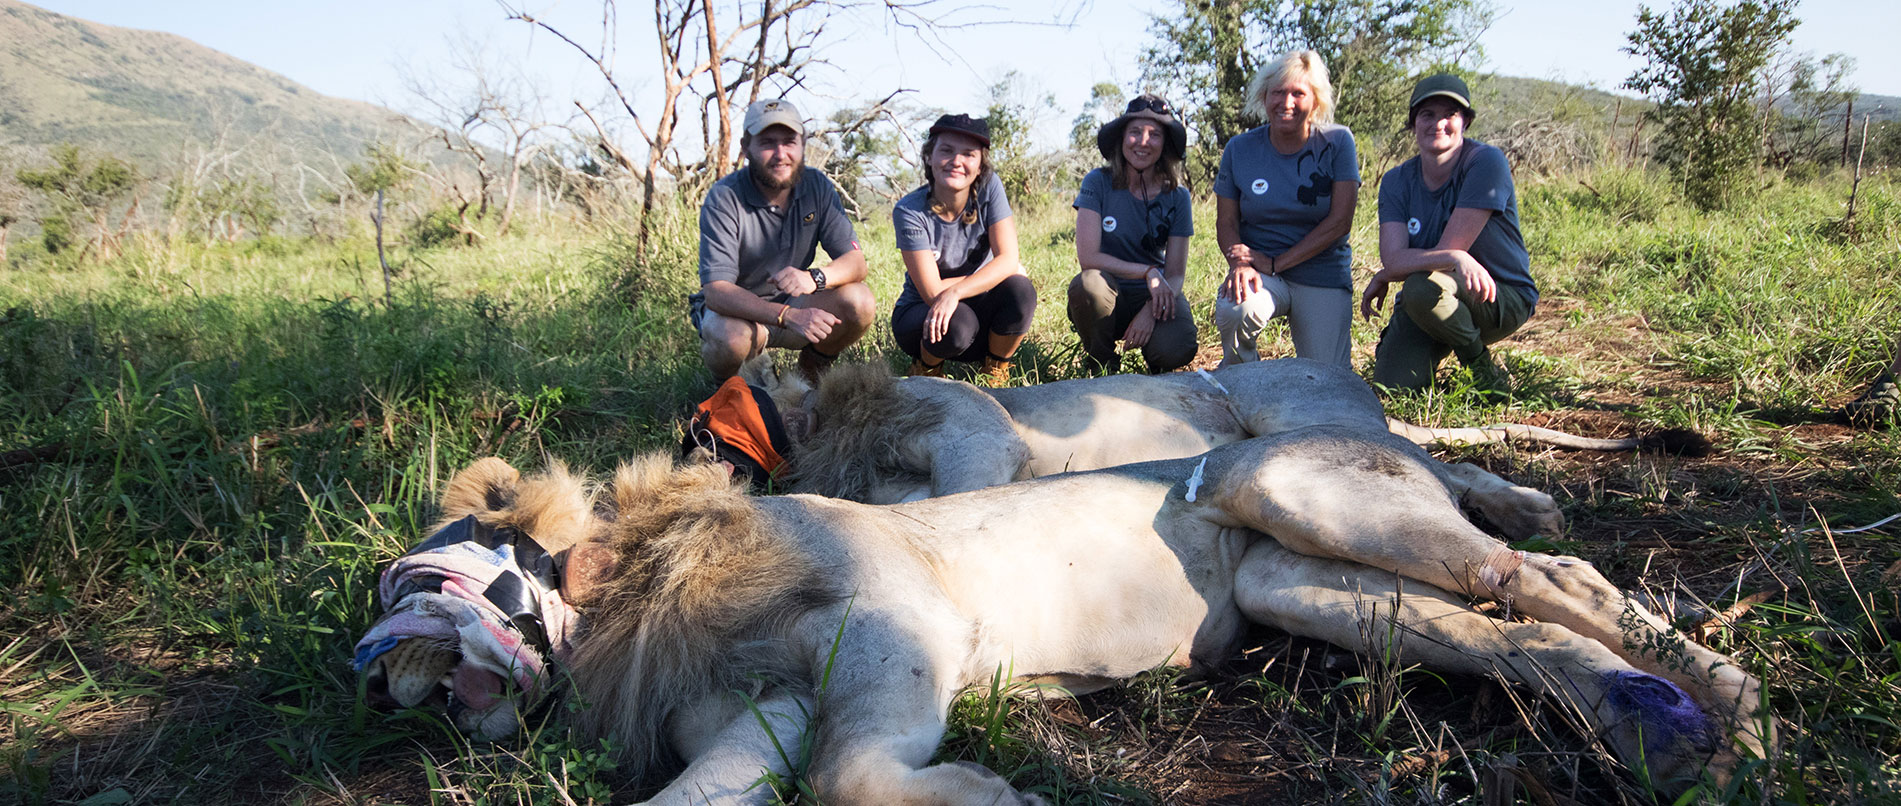 South Africa Endangered Species Conservation